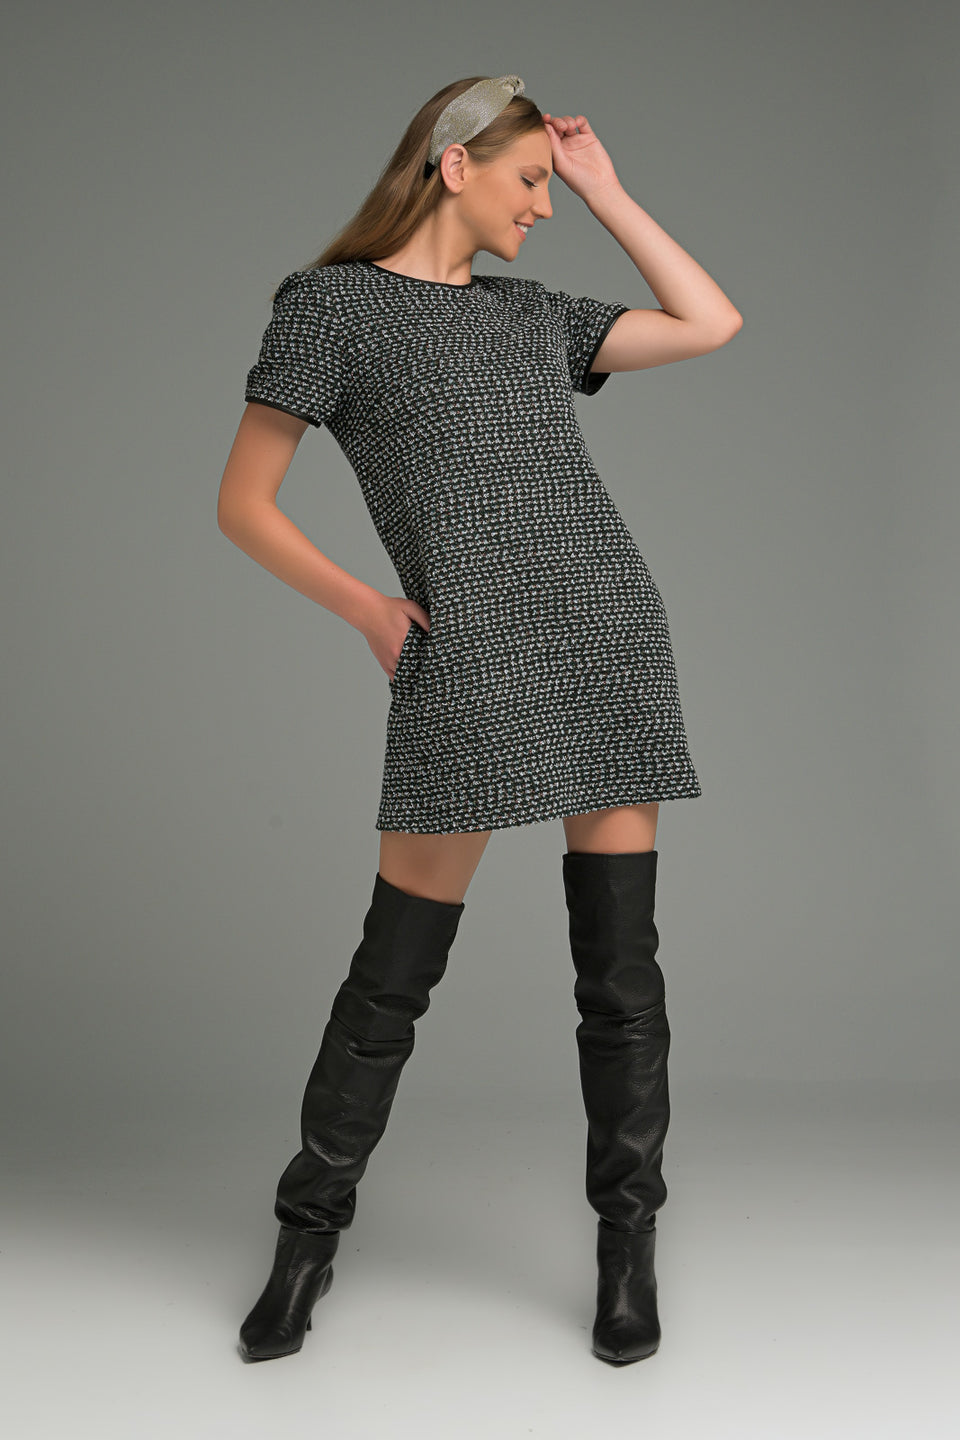 A-LINE DRESS IN HERRINGBONE WITH SHORT SLEEVE AND FAUX LEATHER BINDING A-LINE DRESS IN HERRINGBONE WITH SHORT SLEEVE AND FAUX LEATHER BINDING